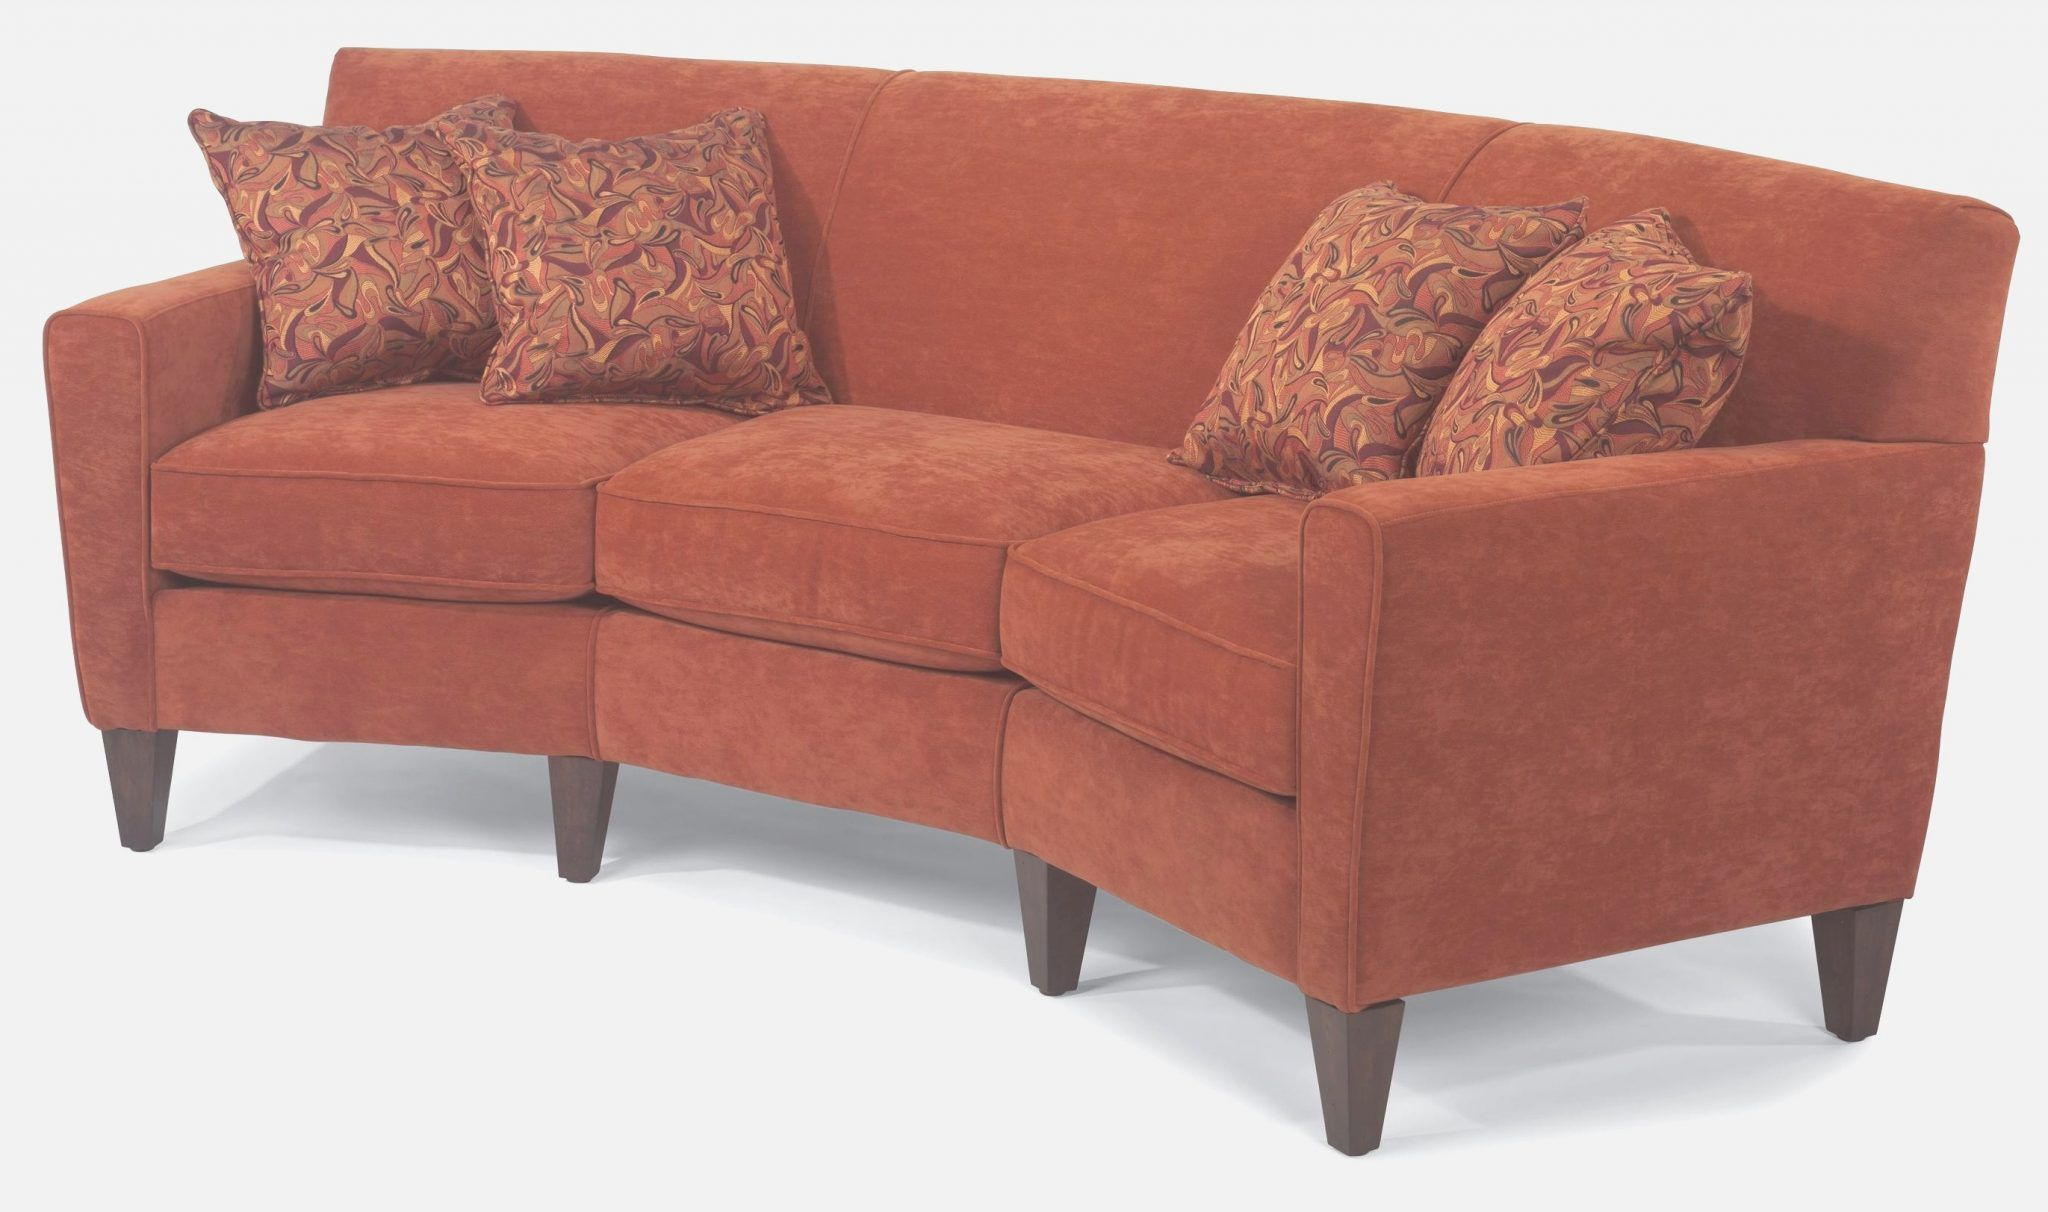 399 Furniture Store 399 Sofa Store Nashville 99 Dollar Sofa 99 Ikea Sofa 99 Sofa